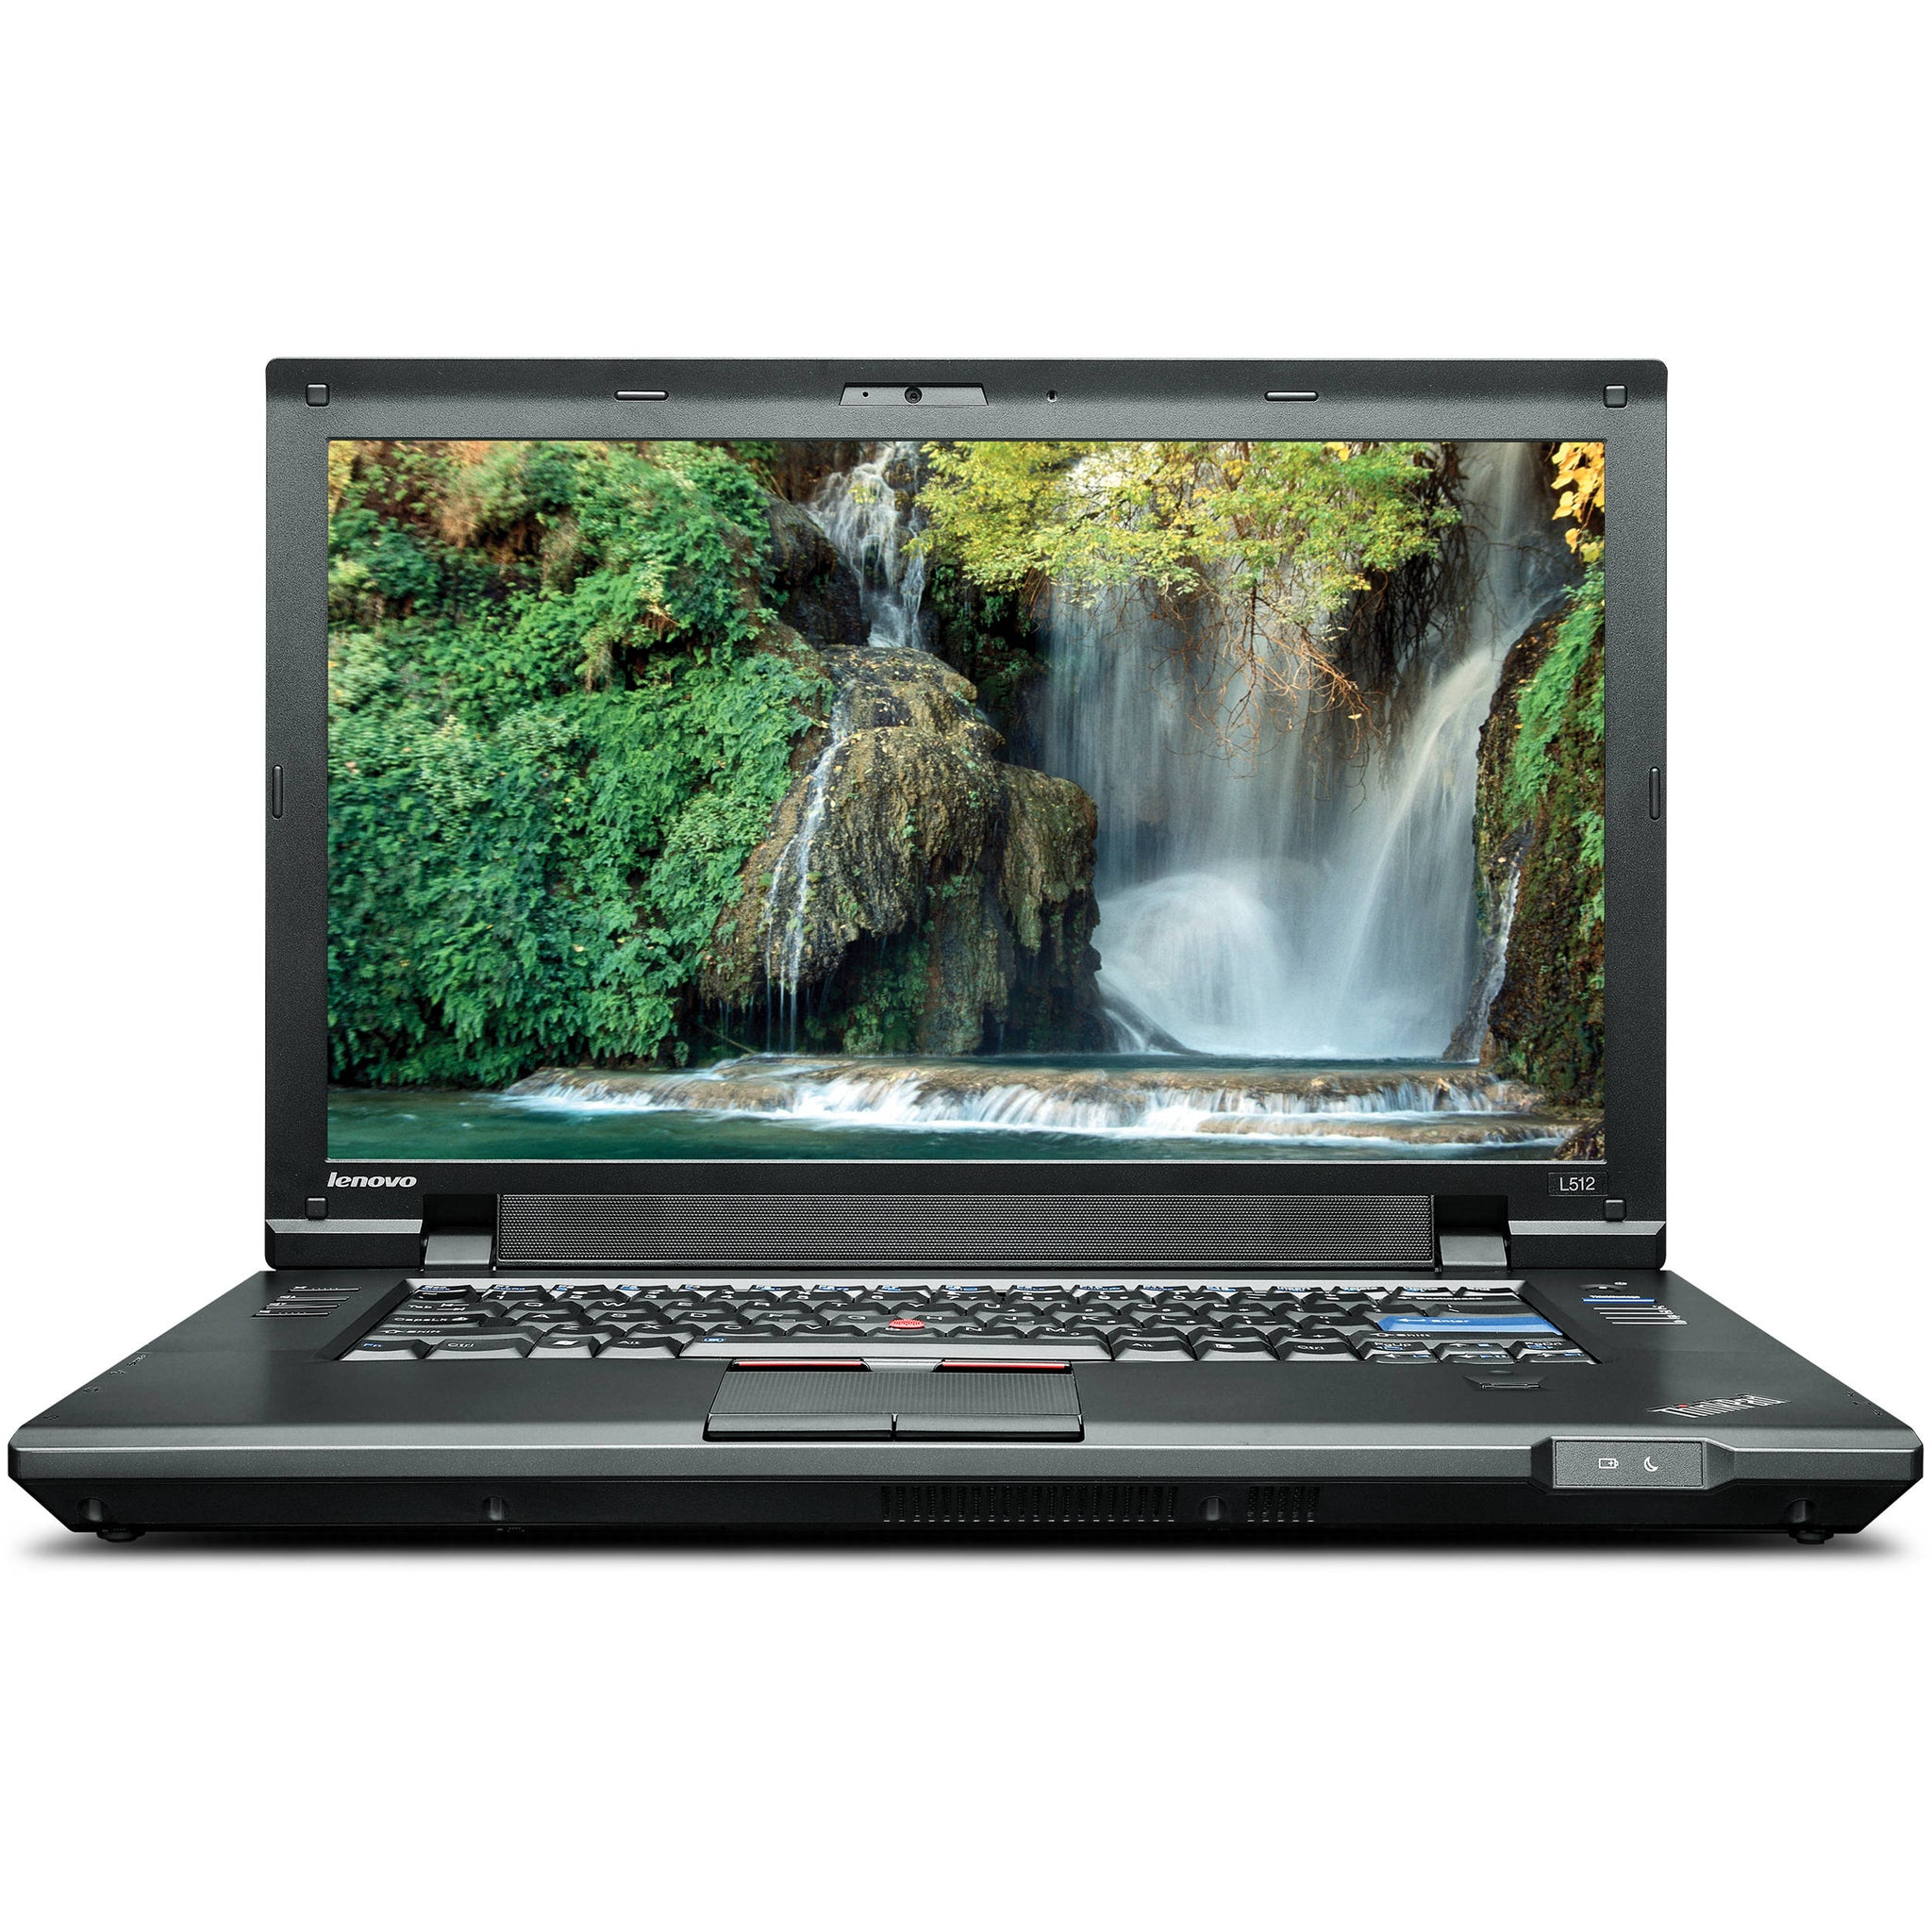 Lenovo L512 Laptop with French Keyboard Refurbished